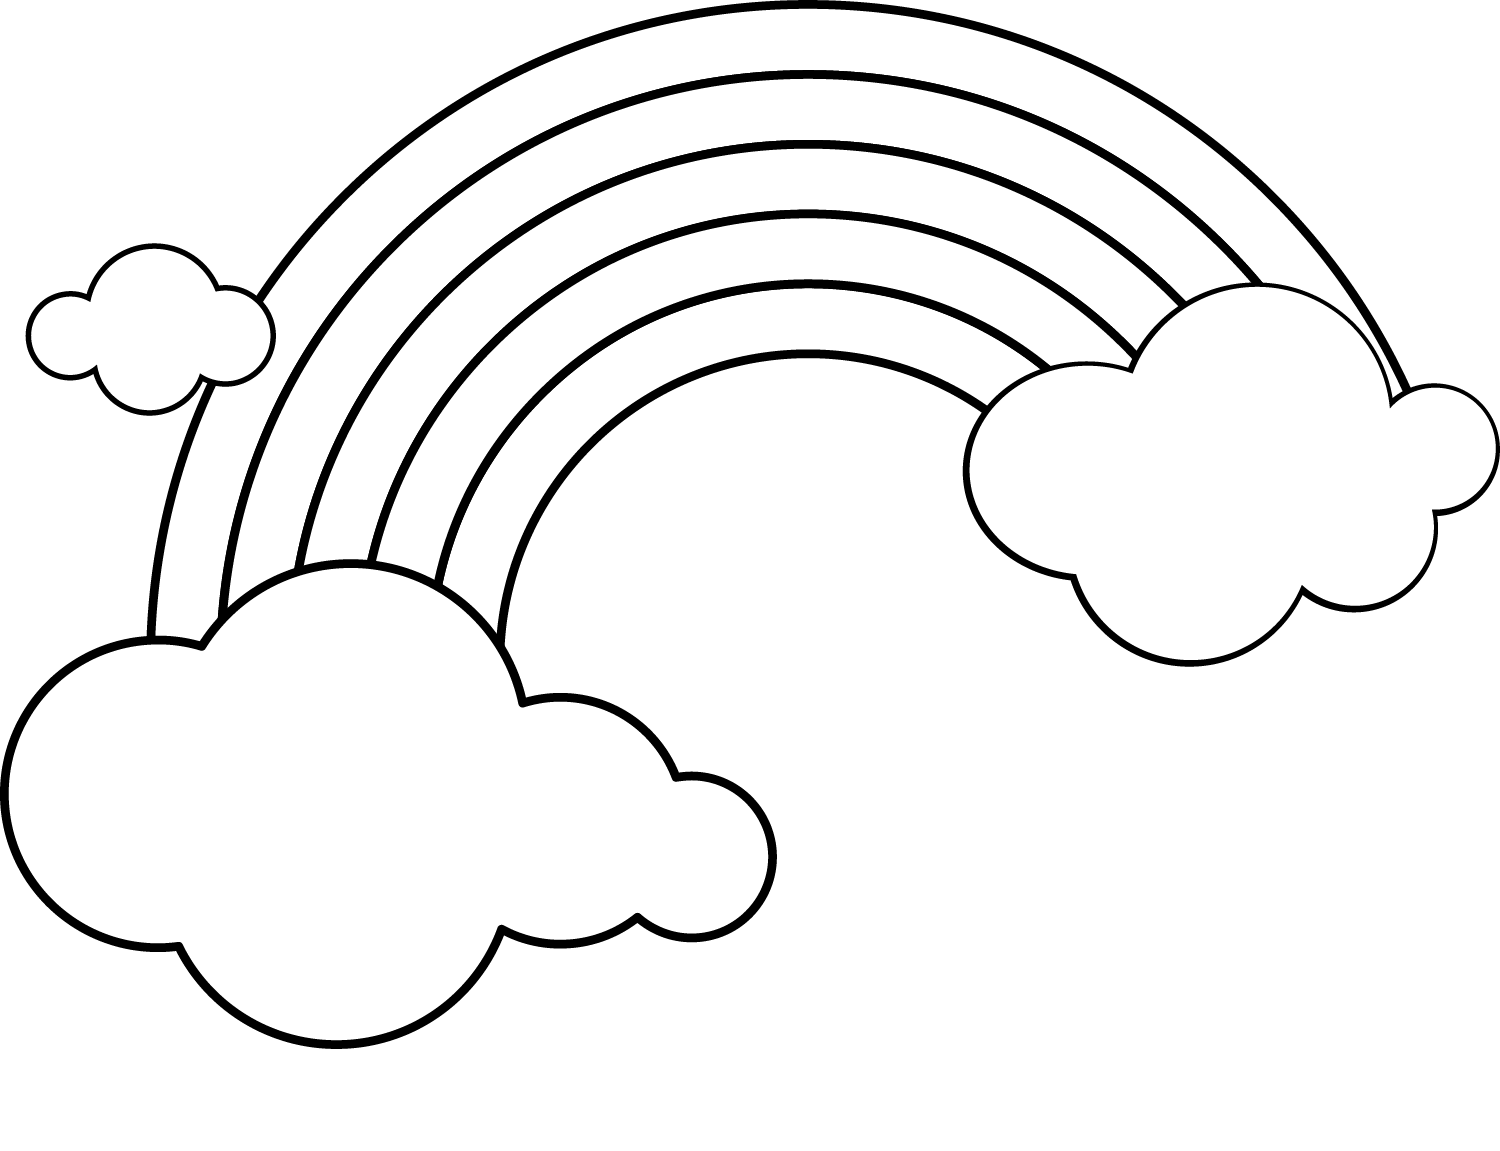 Rainbow and clouds coloring page